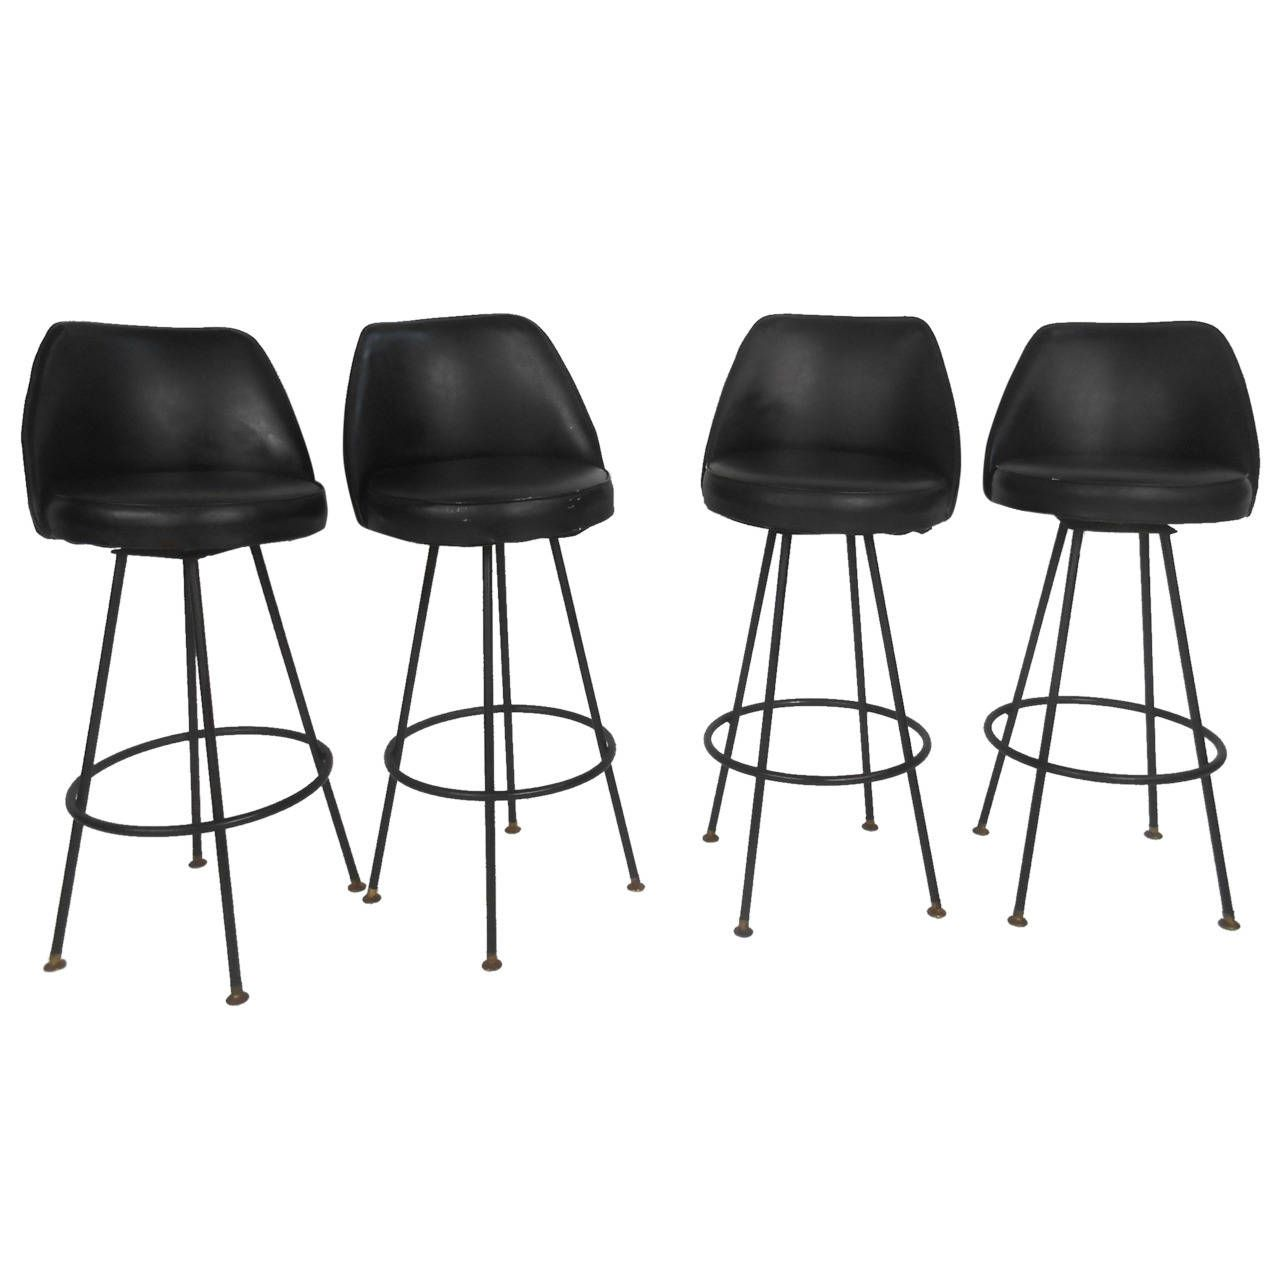 Four Mid Century Modern Bar Stools By Admiral Chrome Corporation 1stdibs Com Bar Stools Modern Bar Stools Mid Century Modern Bar